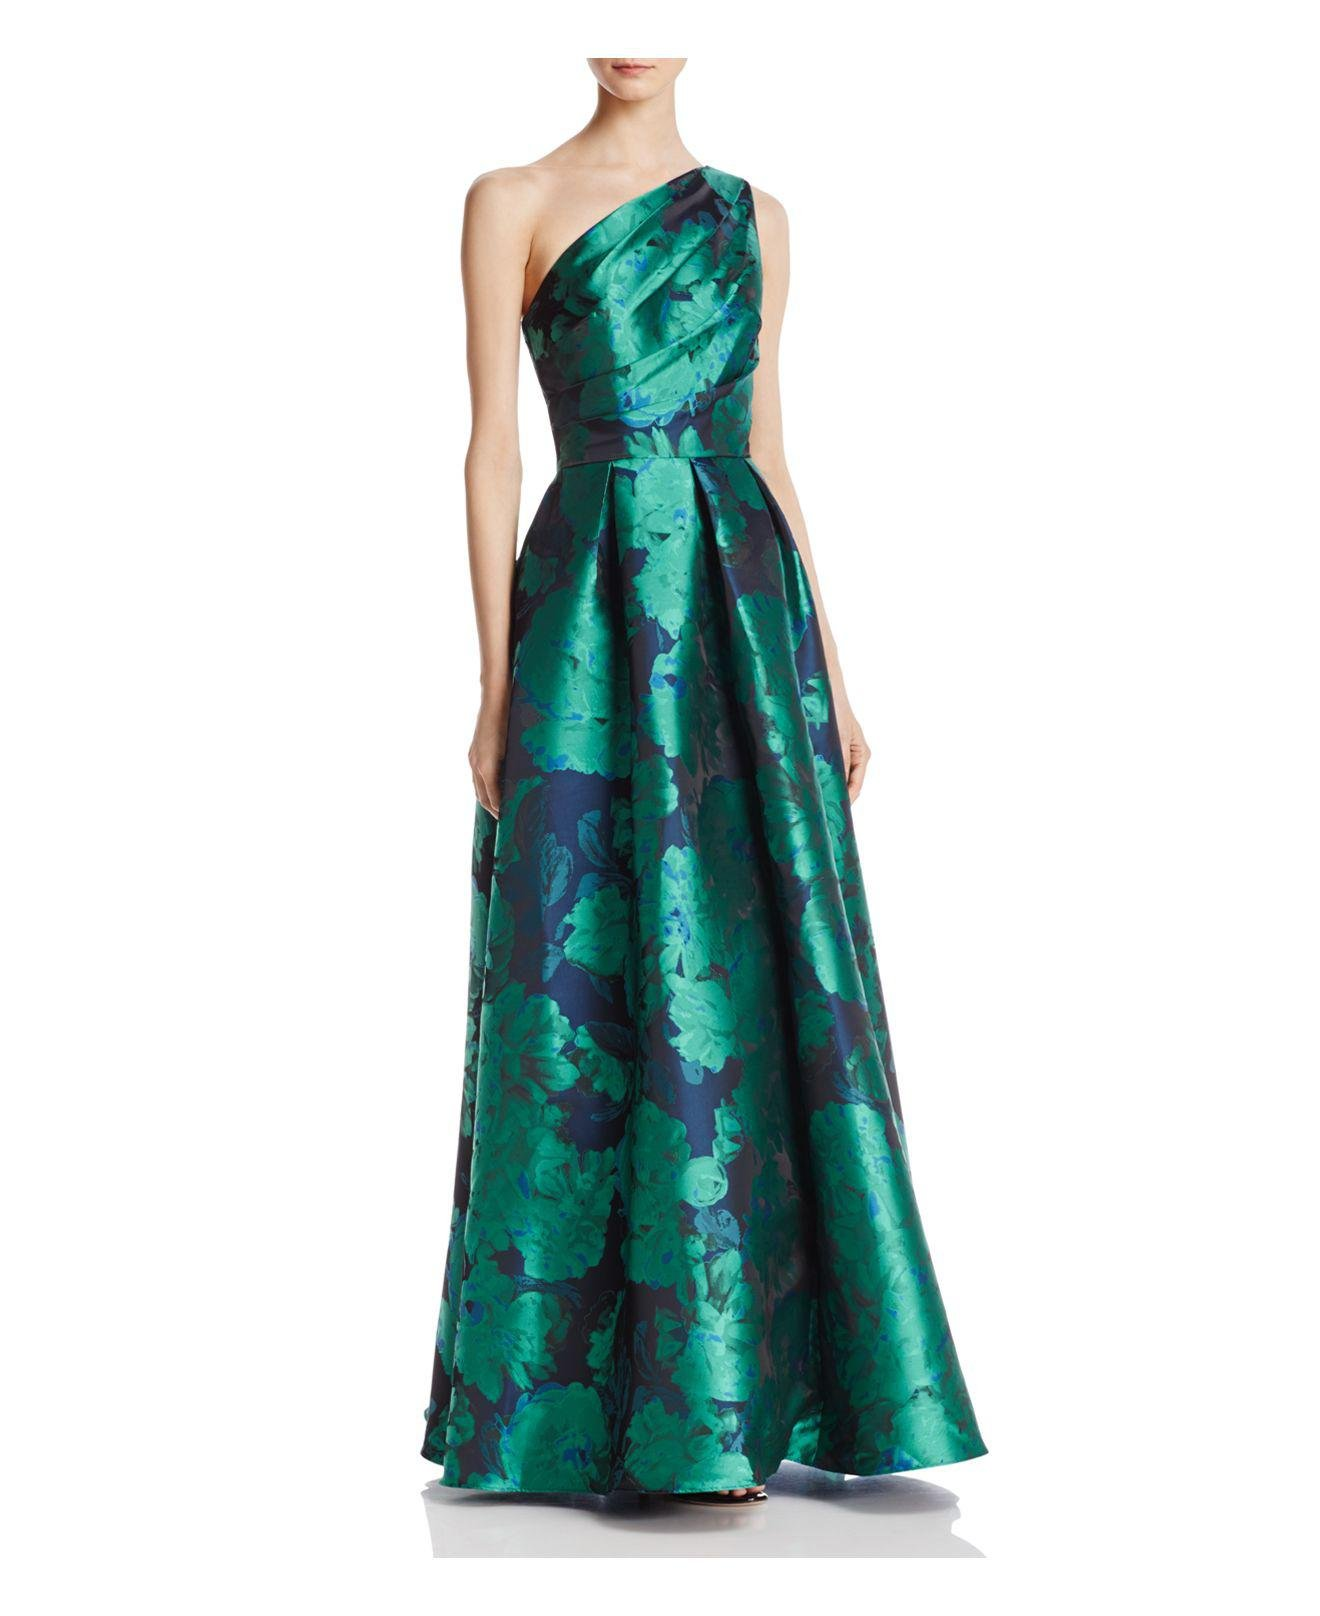 Lyst - Carmen Marc Valvo Infusion One Shoulder Gown in Green